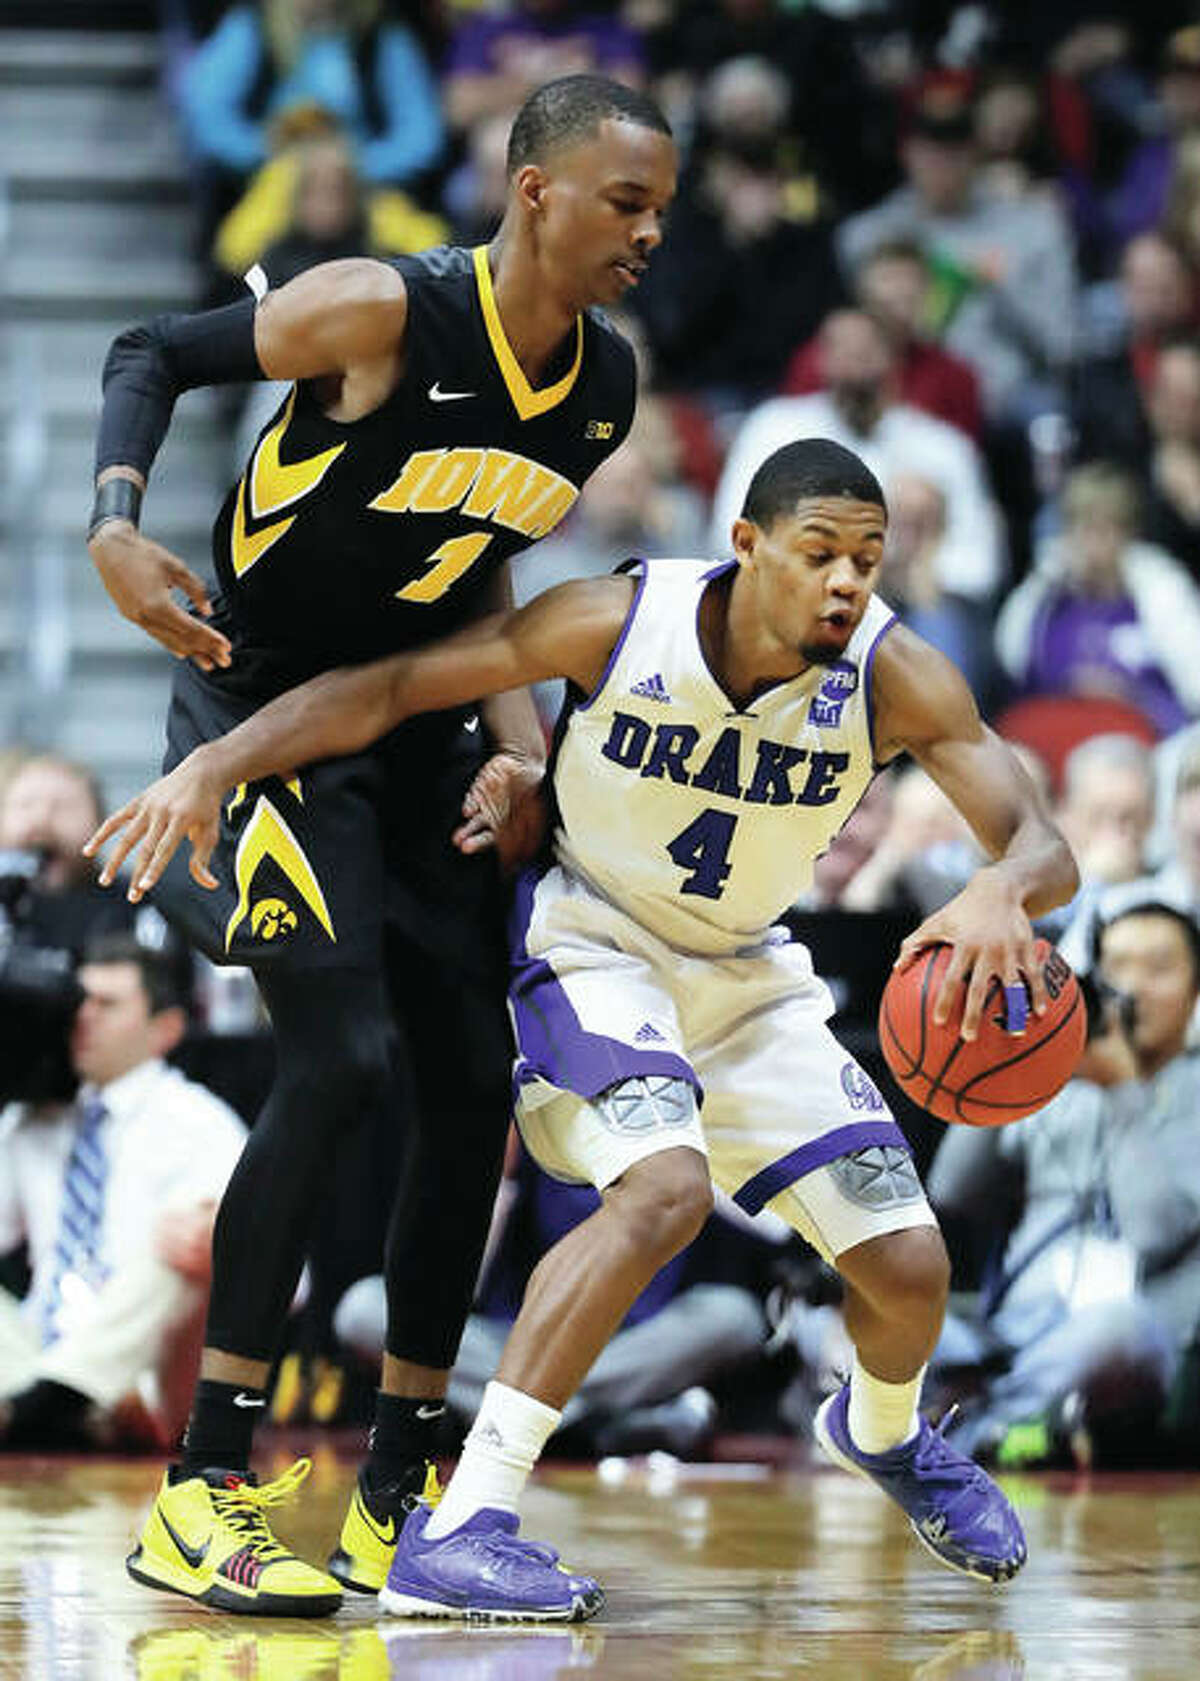 Drake guard De'Antae McMurray (4), a senior from Alton, drives around Iowa's Maishe Dailey during a NCAA college basketball game Dec. 16 in Des Moines, Iowa. Iowa won 90-64. On Friday night back in Des Moines, the 6-foot-2 McMurray scored 16 points in the Bulldogs' 81-57 victory over Maryland Eastern Shore that snapped Drake's three-game losing streak. McMurray is second on the team in scoring at 12.0 points per game. The former prep standout at both Marquette Catholic and Alton high schools is shooting 40 percent from 3-point range and has scored in double figures in each of Drake's last four games. The 6-7 Bulldogs open Missouri Valley Conference play at home on Thursday against Bradley.